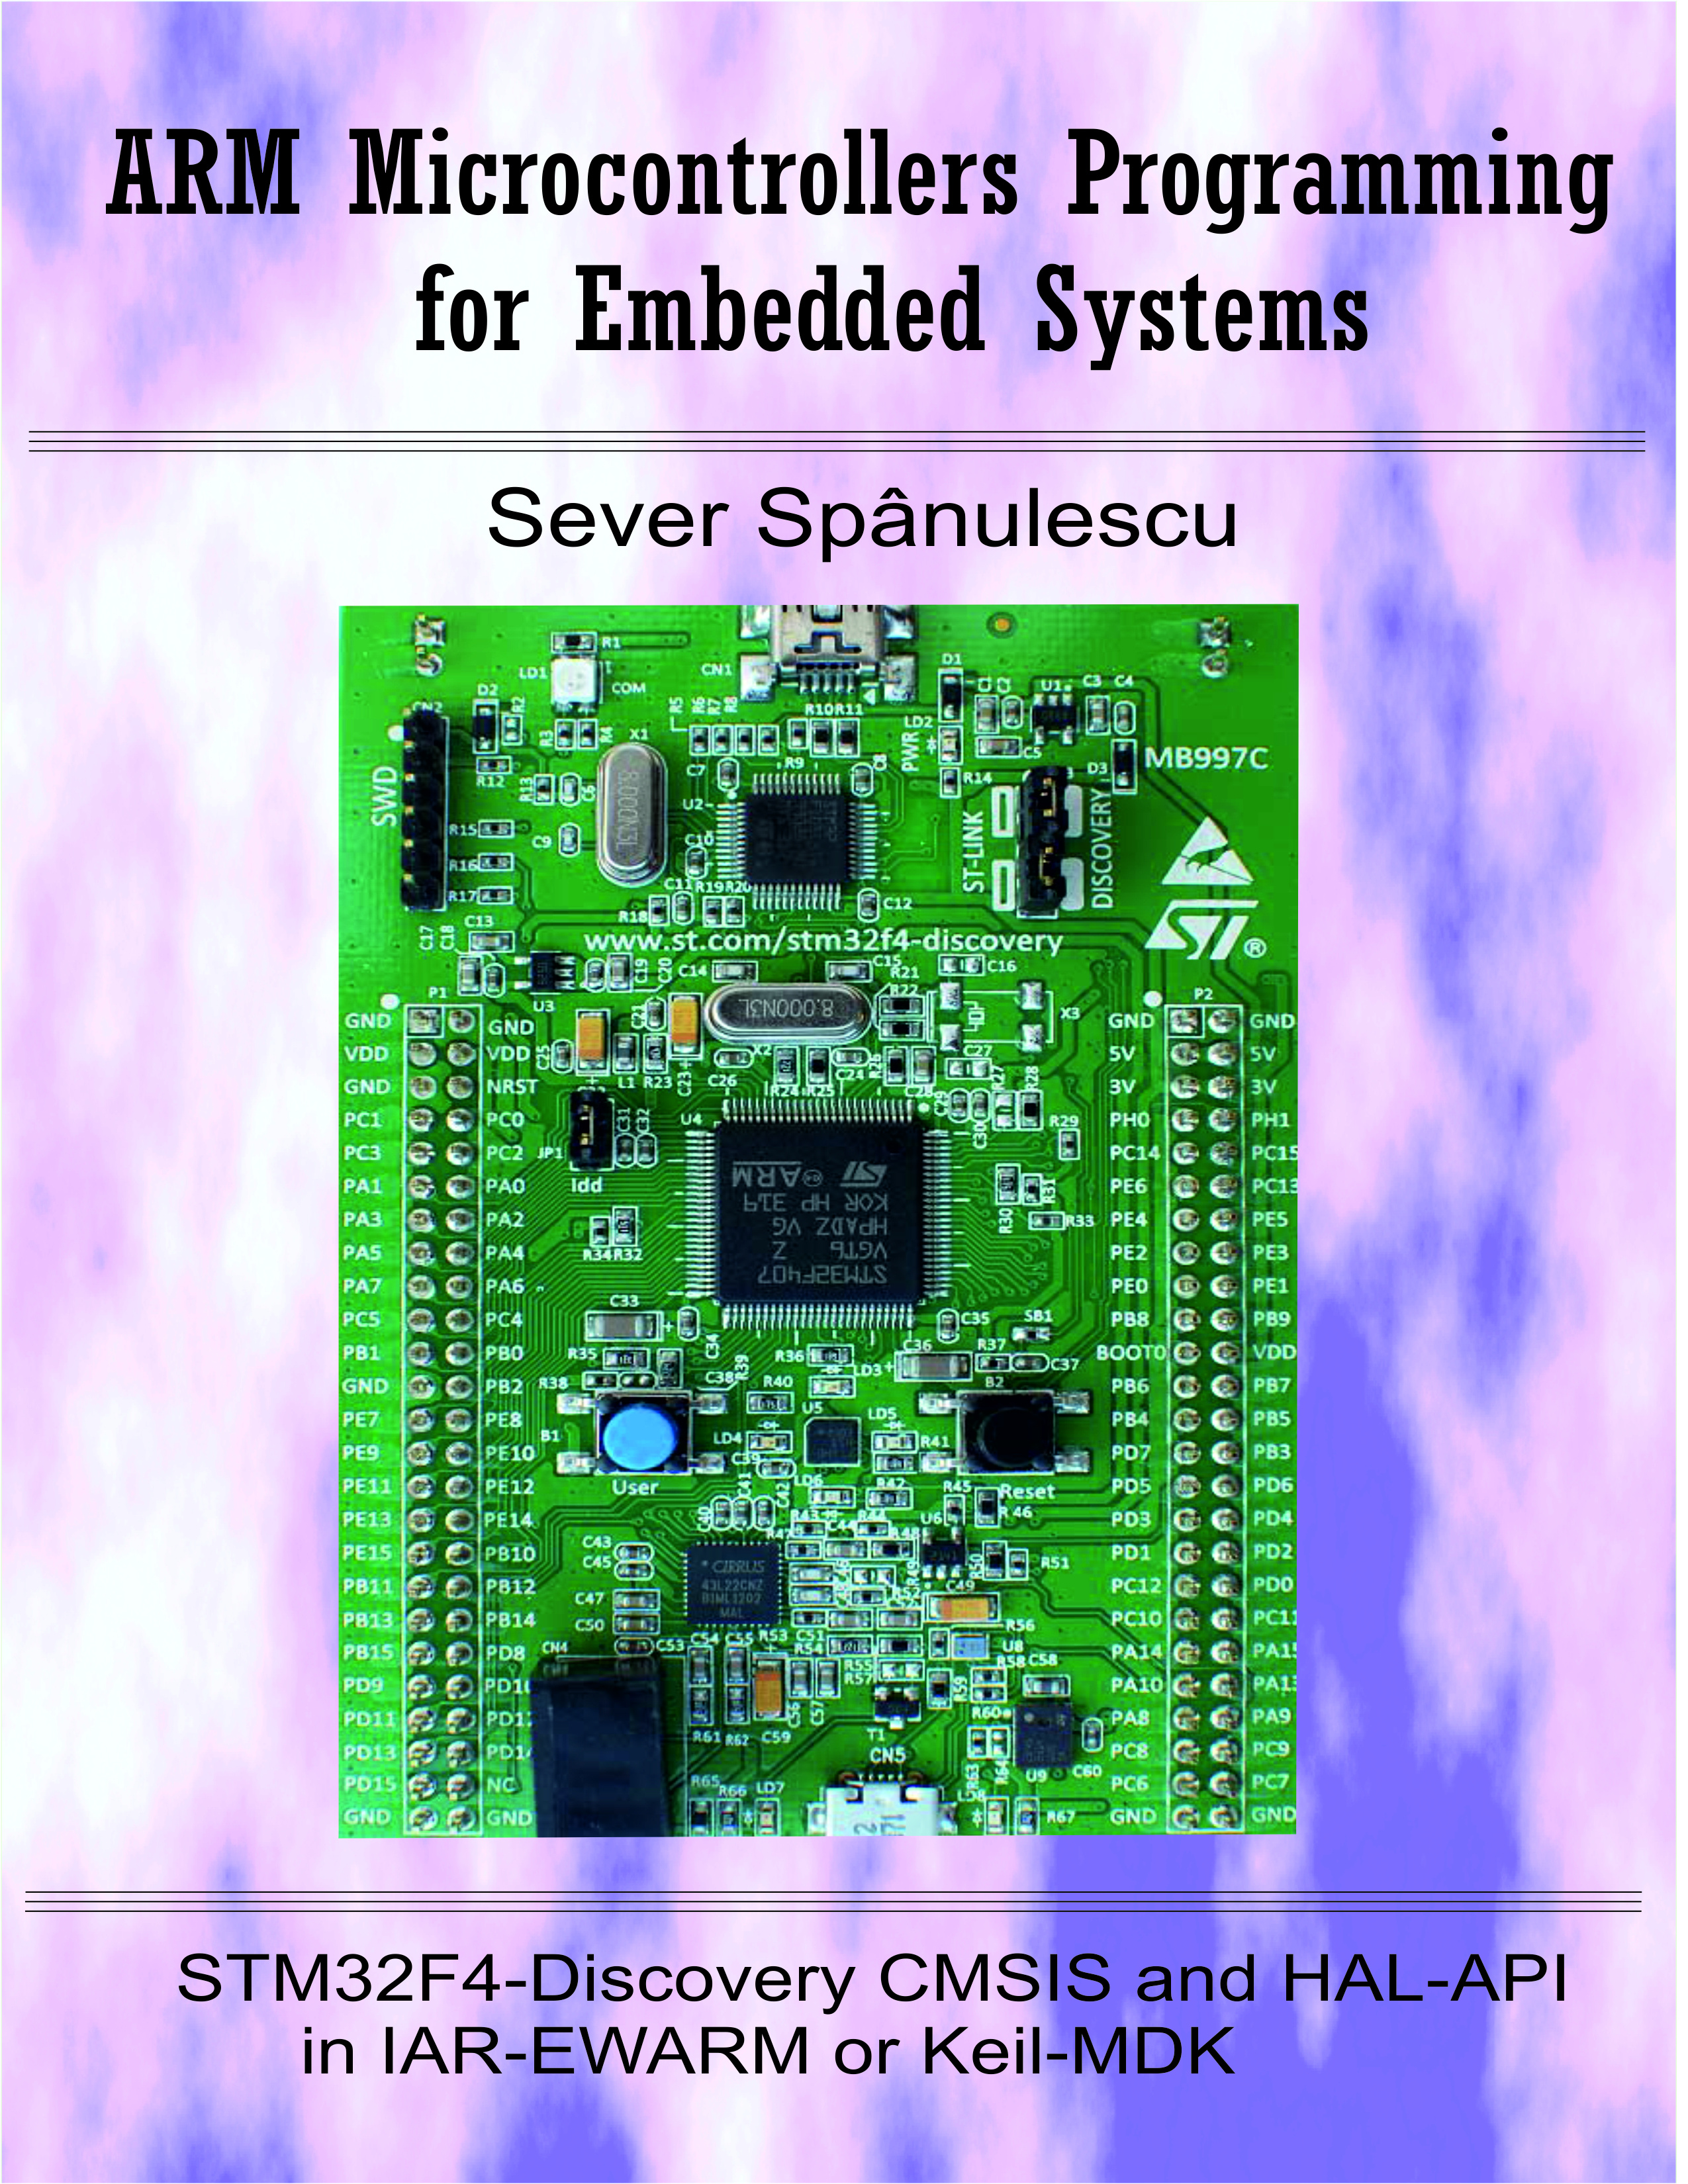 ARM Microcontrollers Programming for Embedded Systems, an Ebook by Sever  Spanulescu